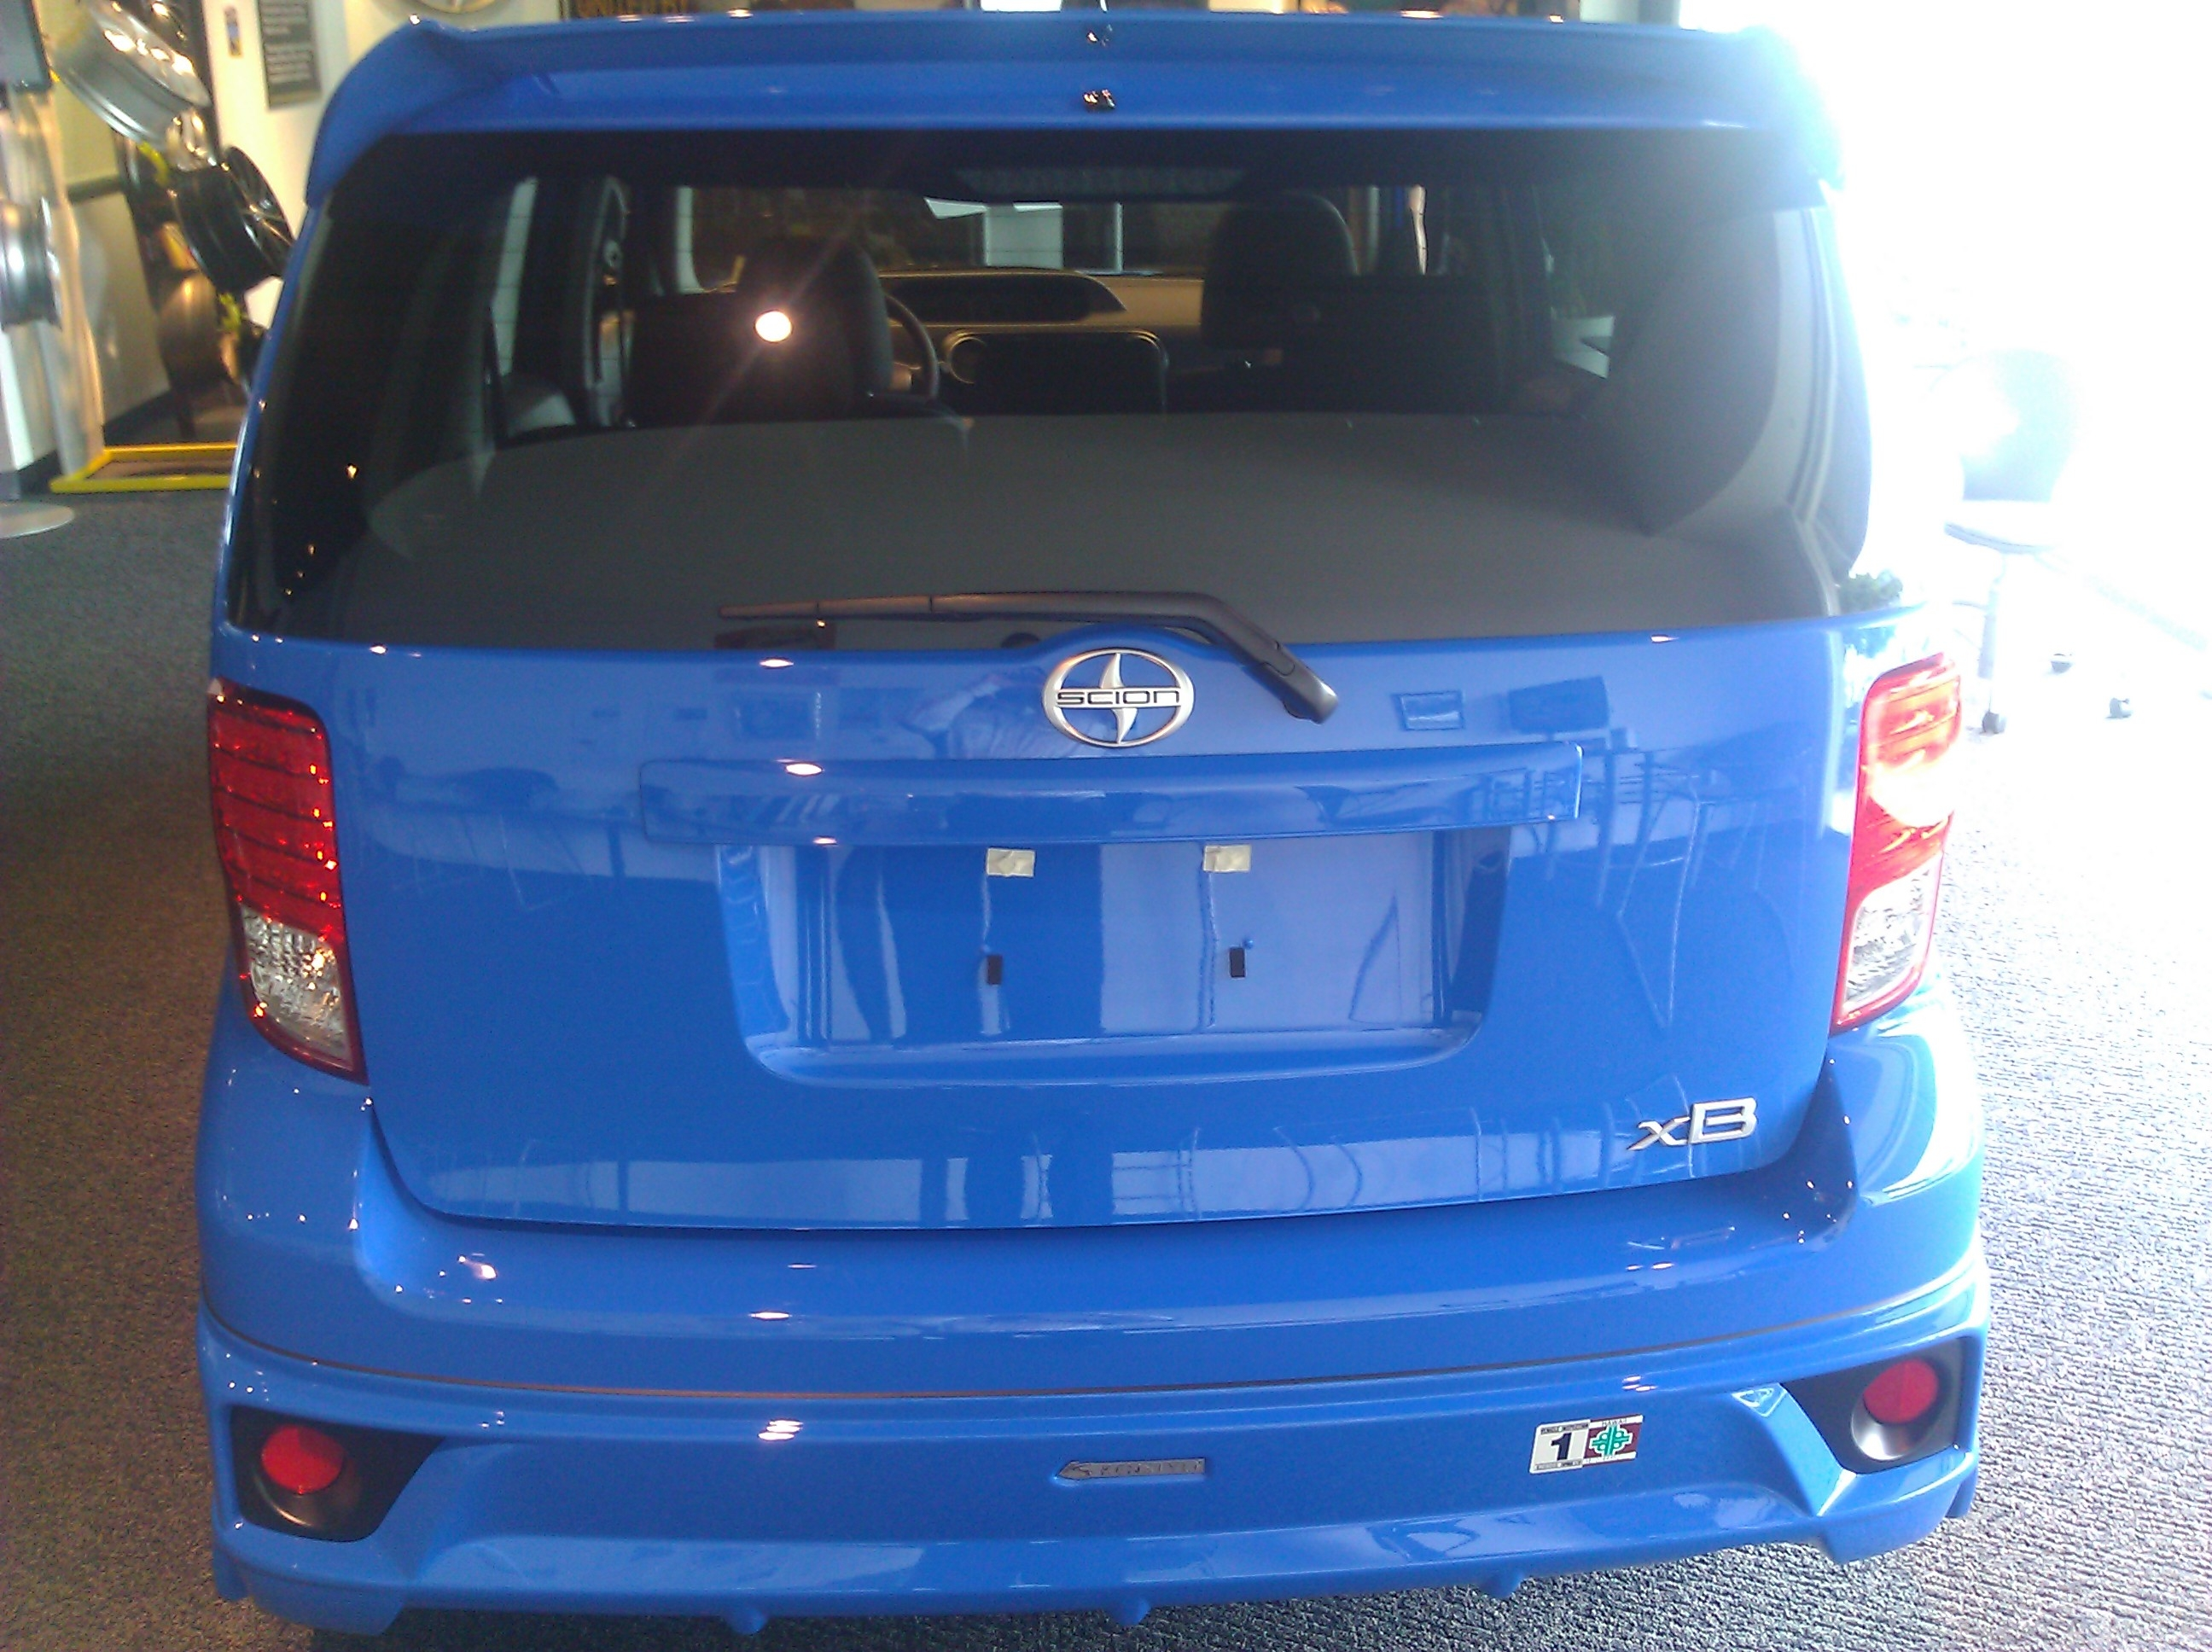 LELE_boy 2011 Scion xB 18895791